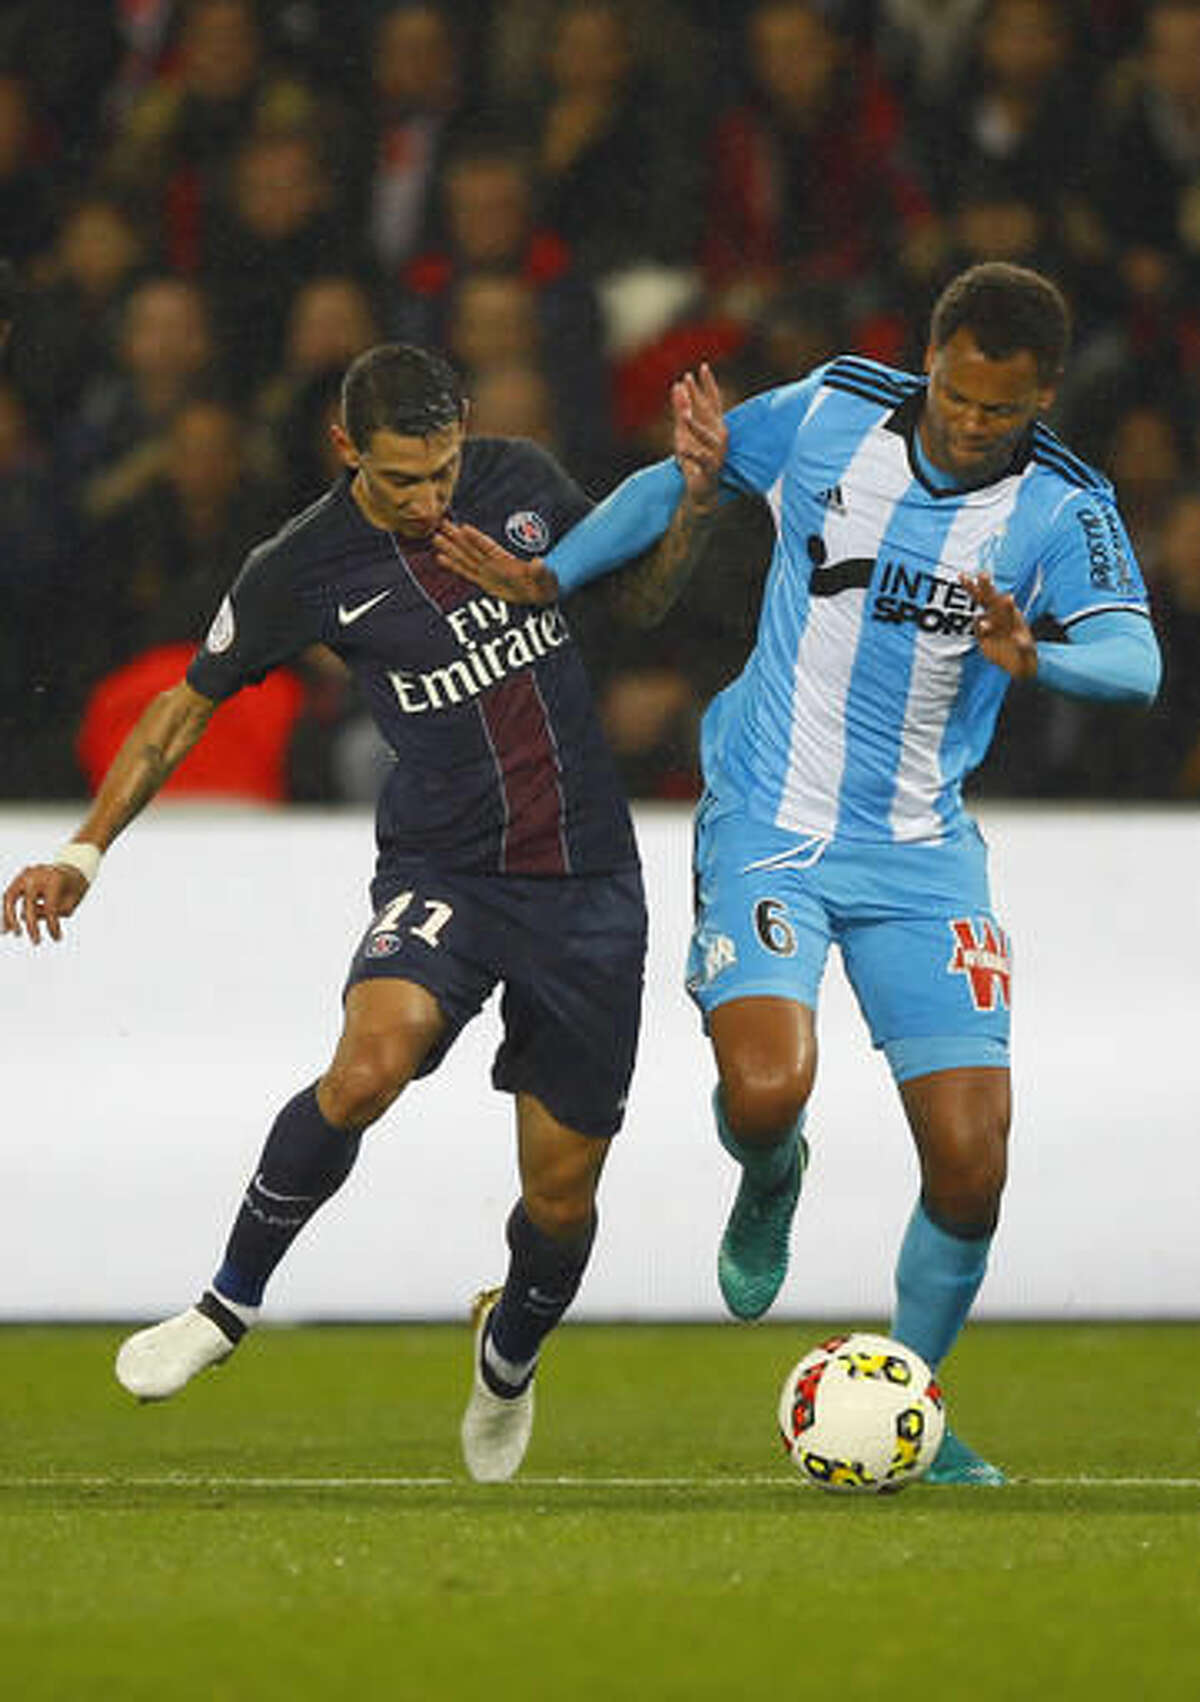 PSG's Angel Di Maria, left, challenges for the ball with Marseille's Rolando Pires Da Fonseca during their French League One soccer match between PSG and Marseille at the Parc des Princes stadium in Paris, France, Sunday, Oct. 23, 2016. (AP Photo/Francois Mori)